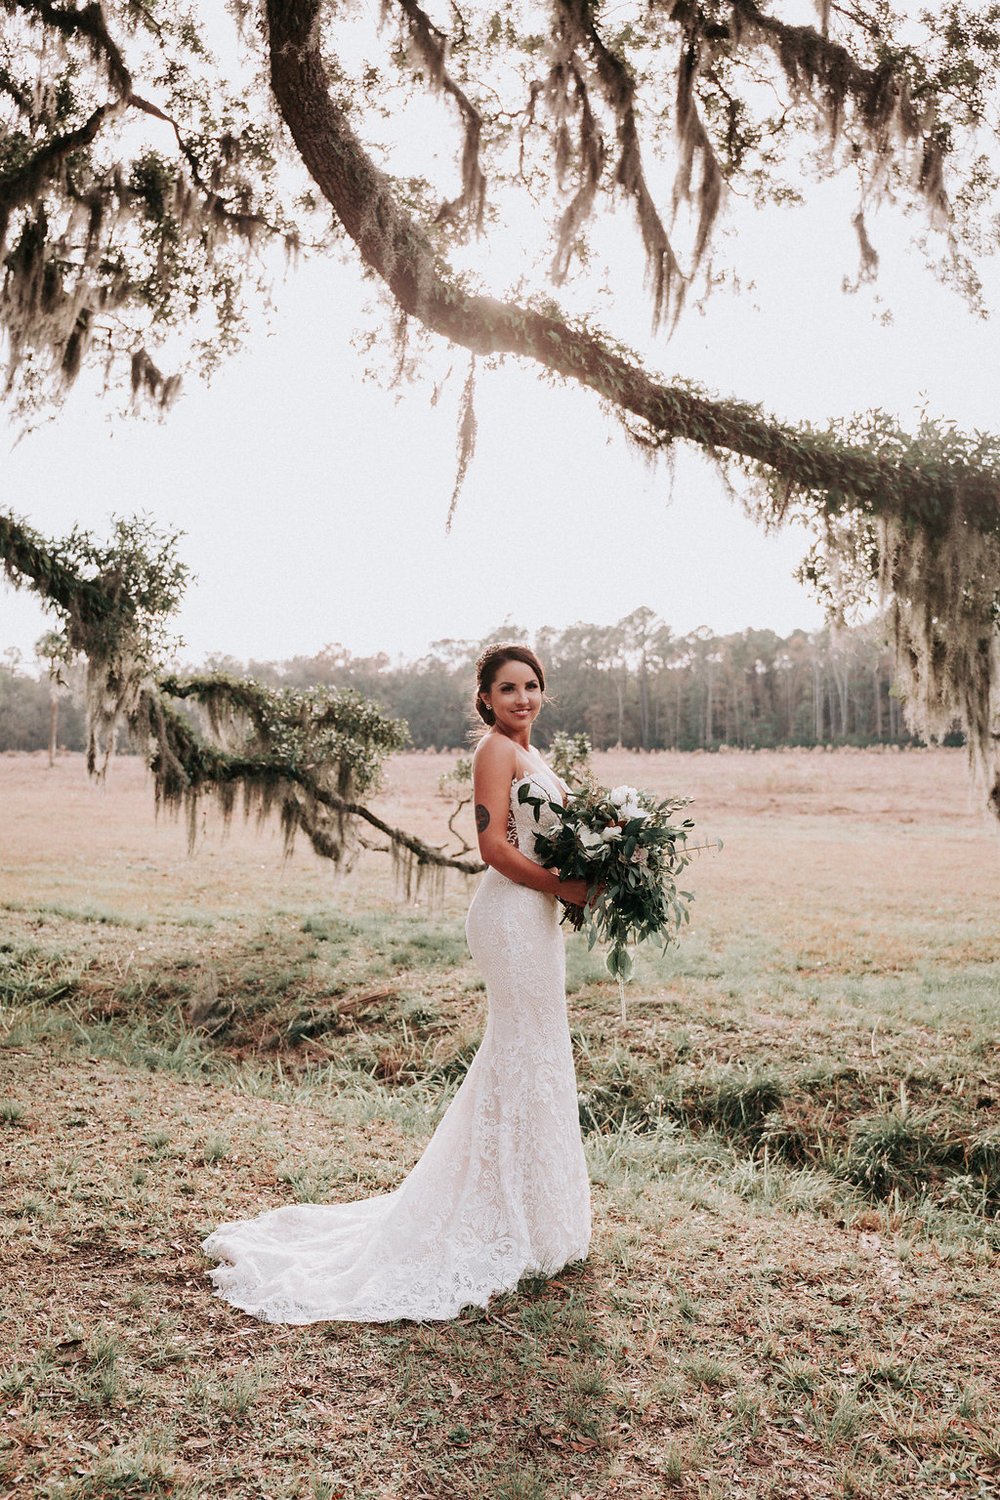 ivory-and-beau-savannah-bridal-shop-ivory-and-beau-couple-caitlin-and-tim-wormsloe-wedding-savannah-wedding-florist-house-of-ivory-photography-20.jpg